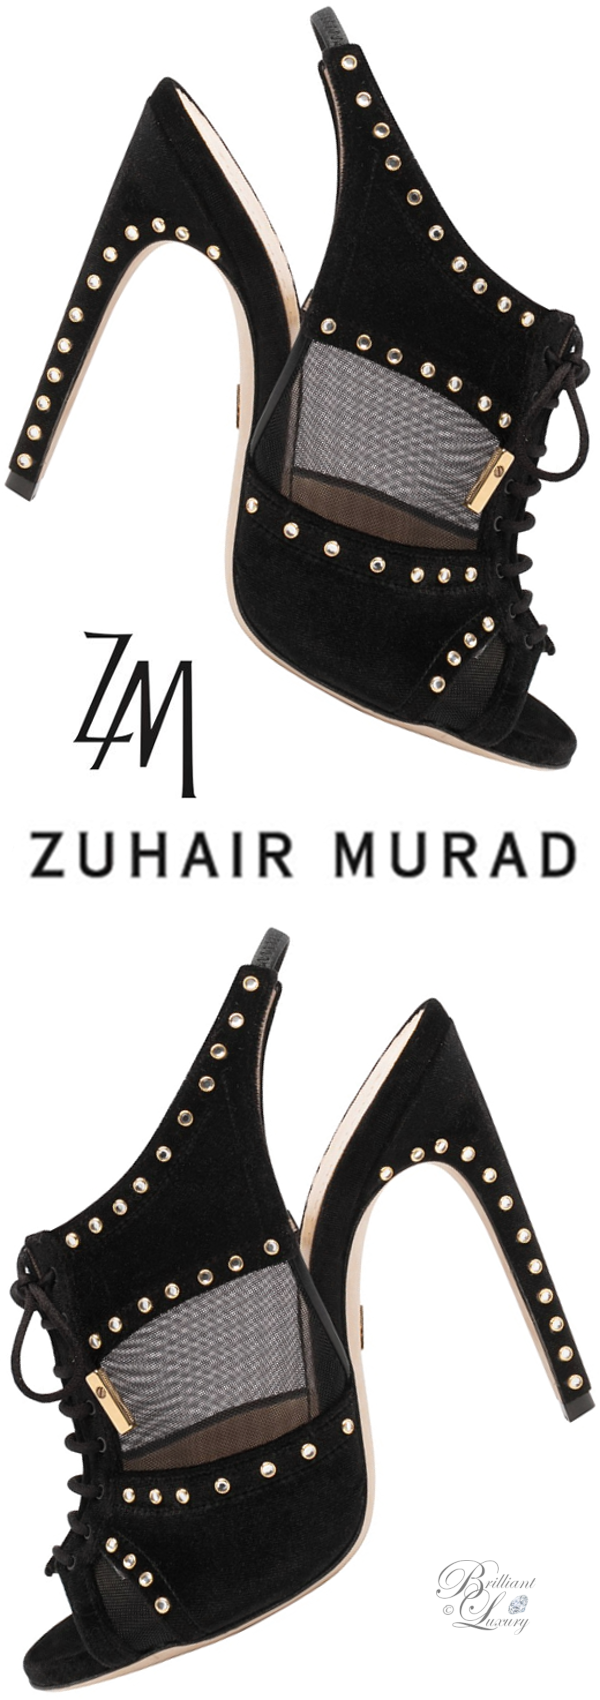 Brilliant Luxury│Zuhair Murad slingback peeptoe mules in black